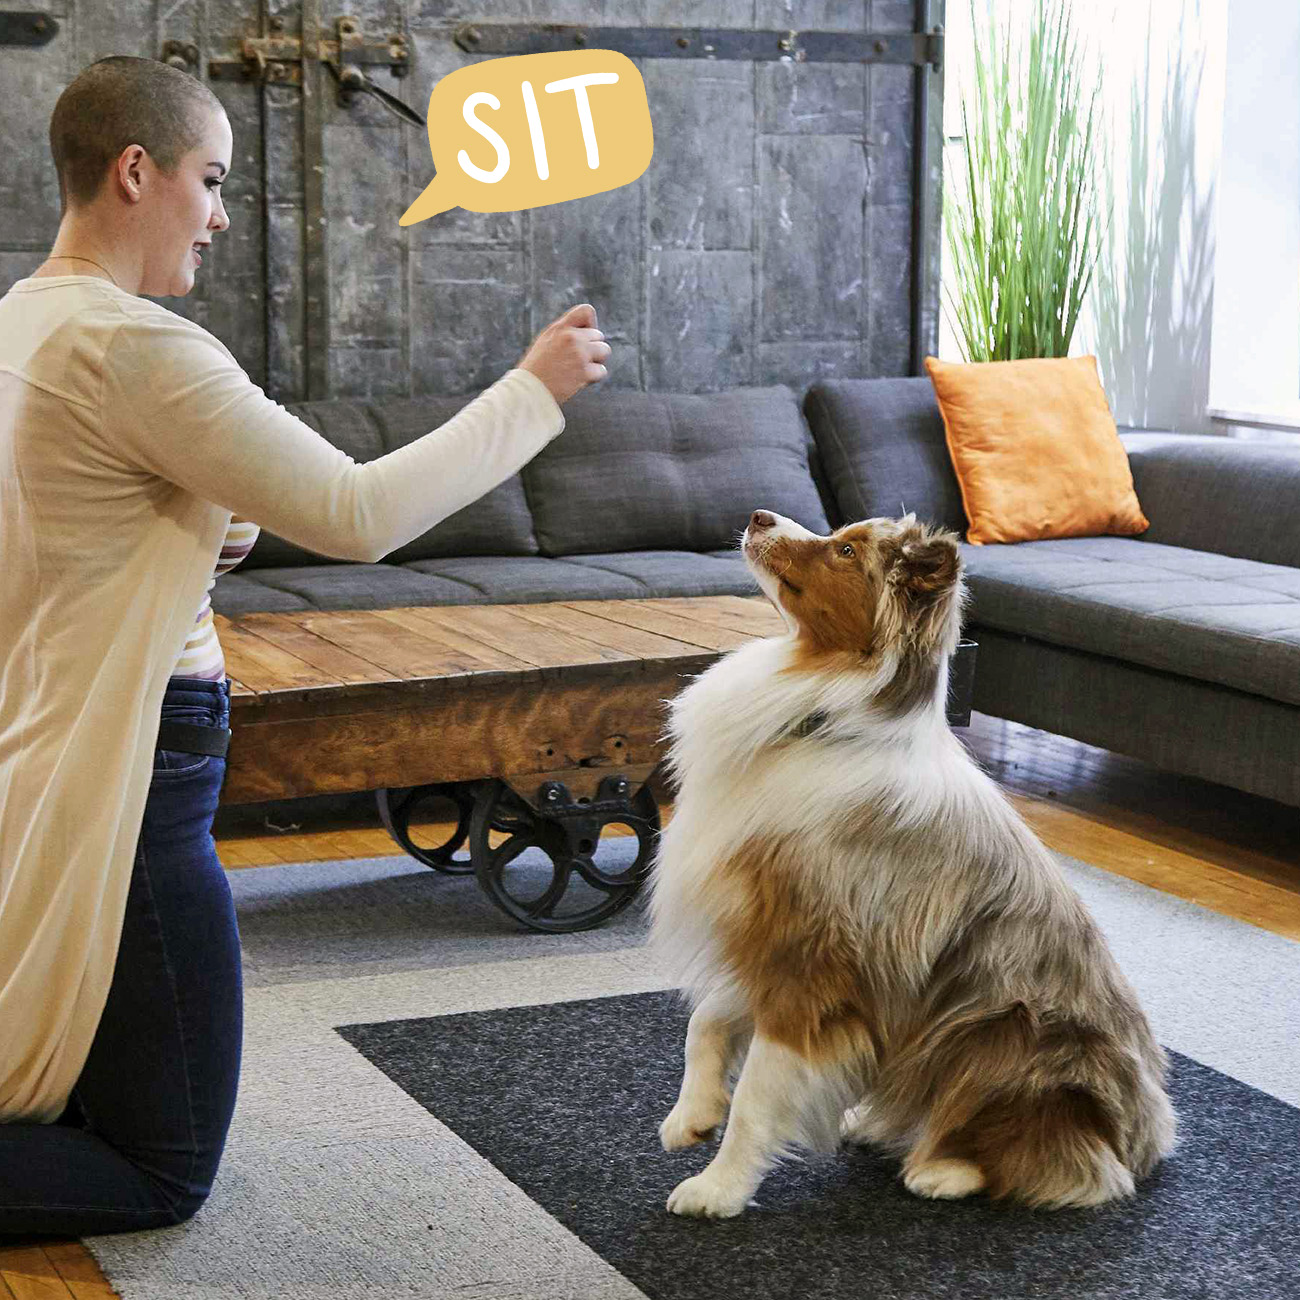 sit cure in speech bubble with dog sitting